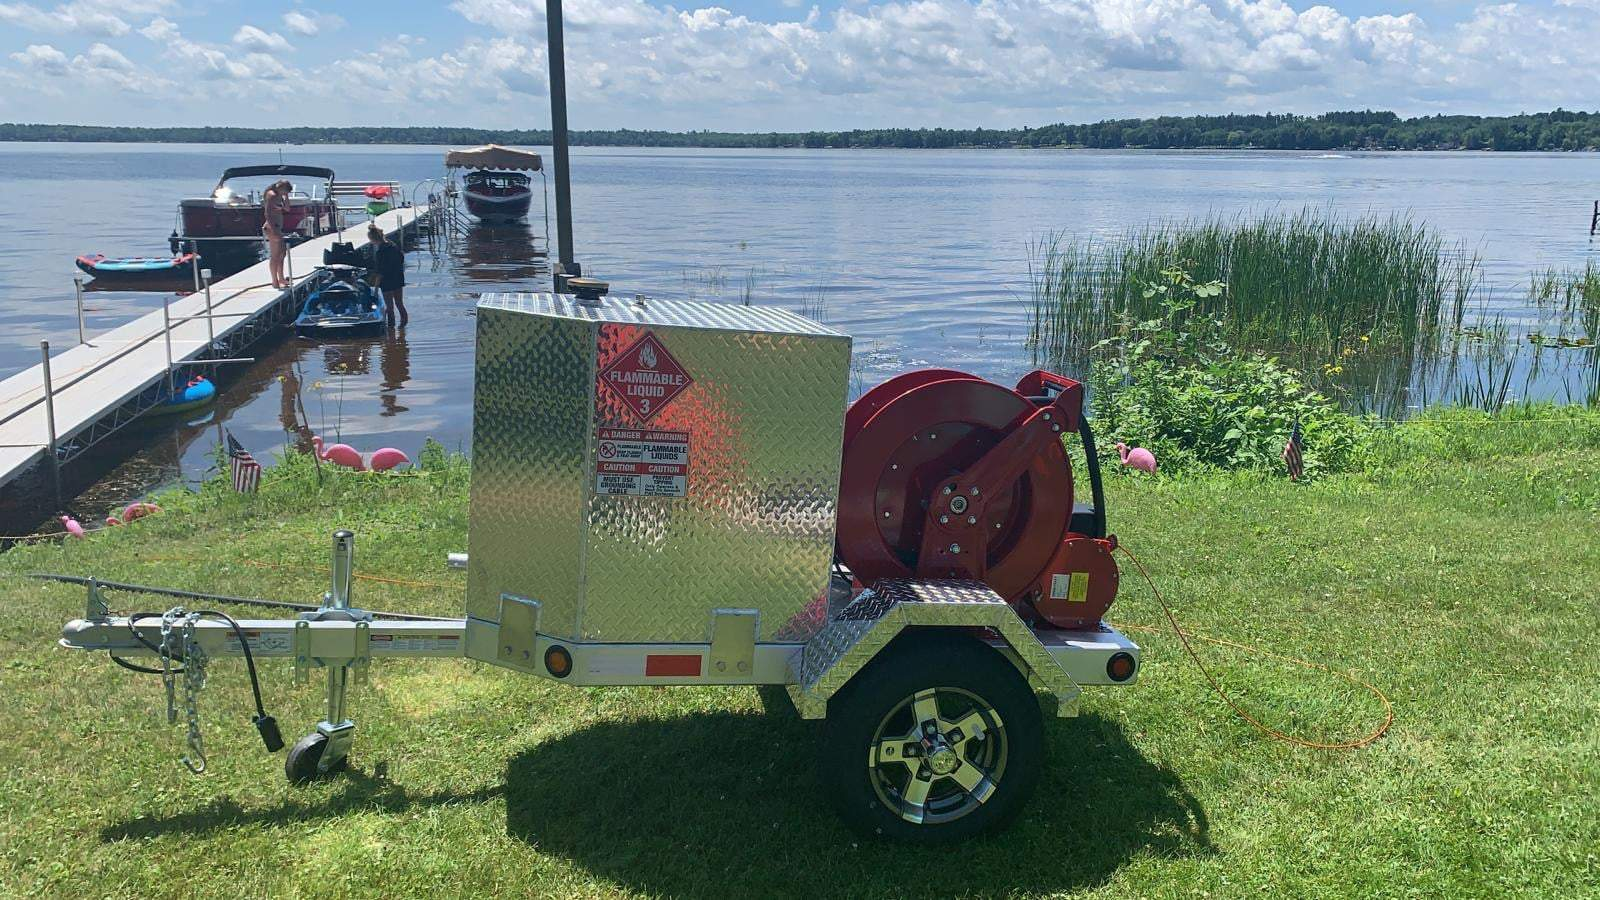 Read more about the article Robinson's new portable fuel trailer is a hit at the lake